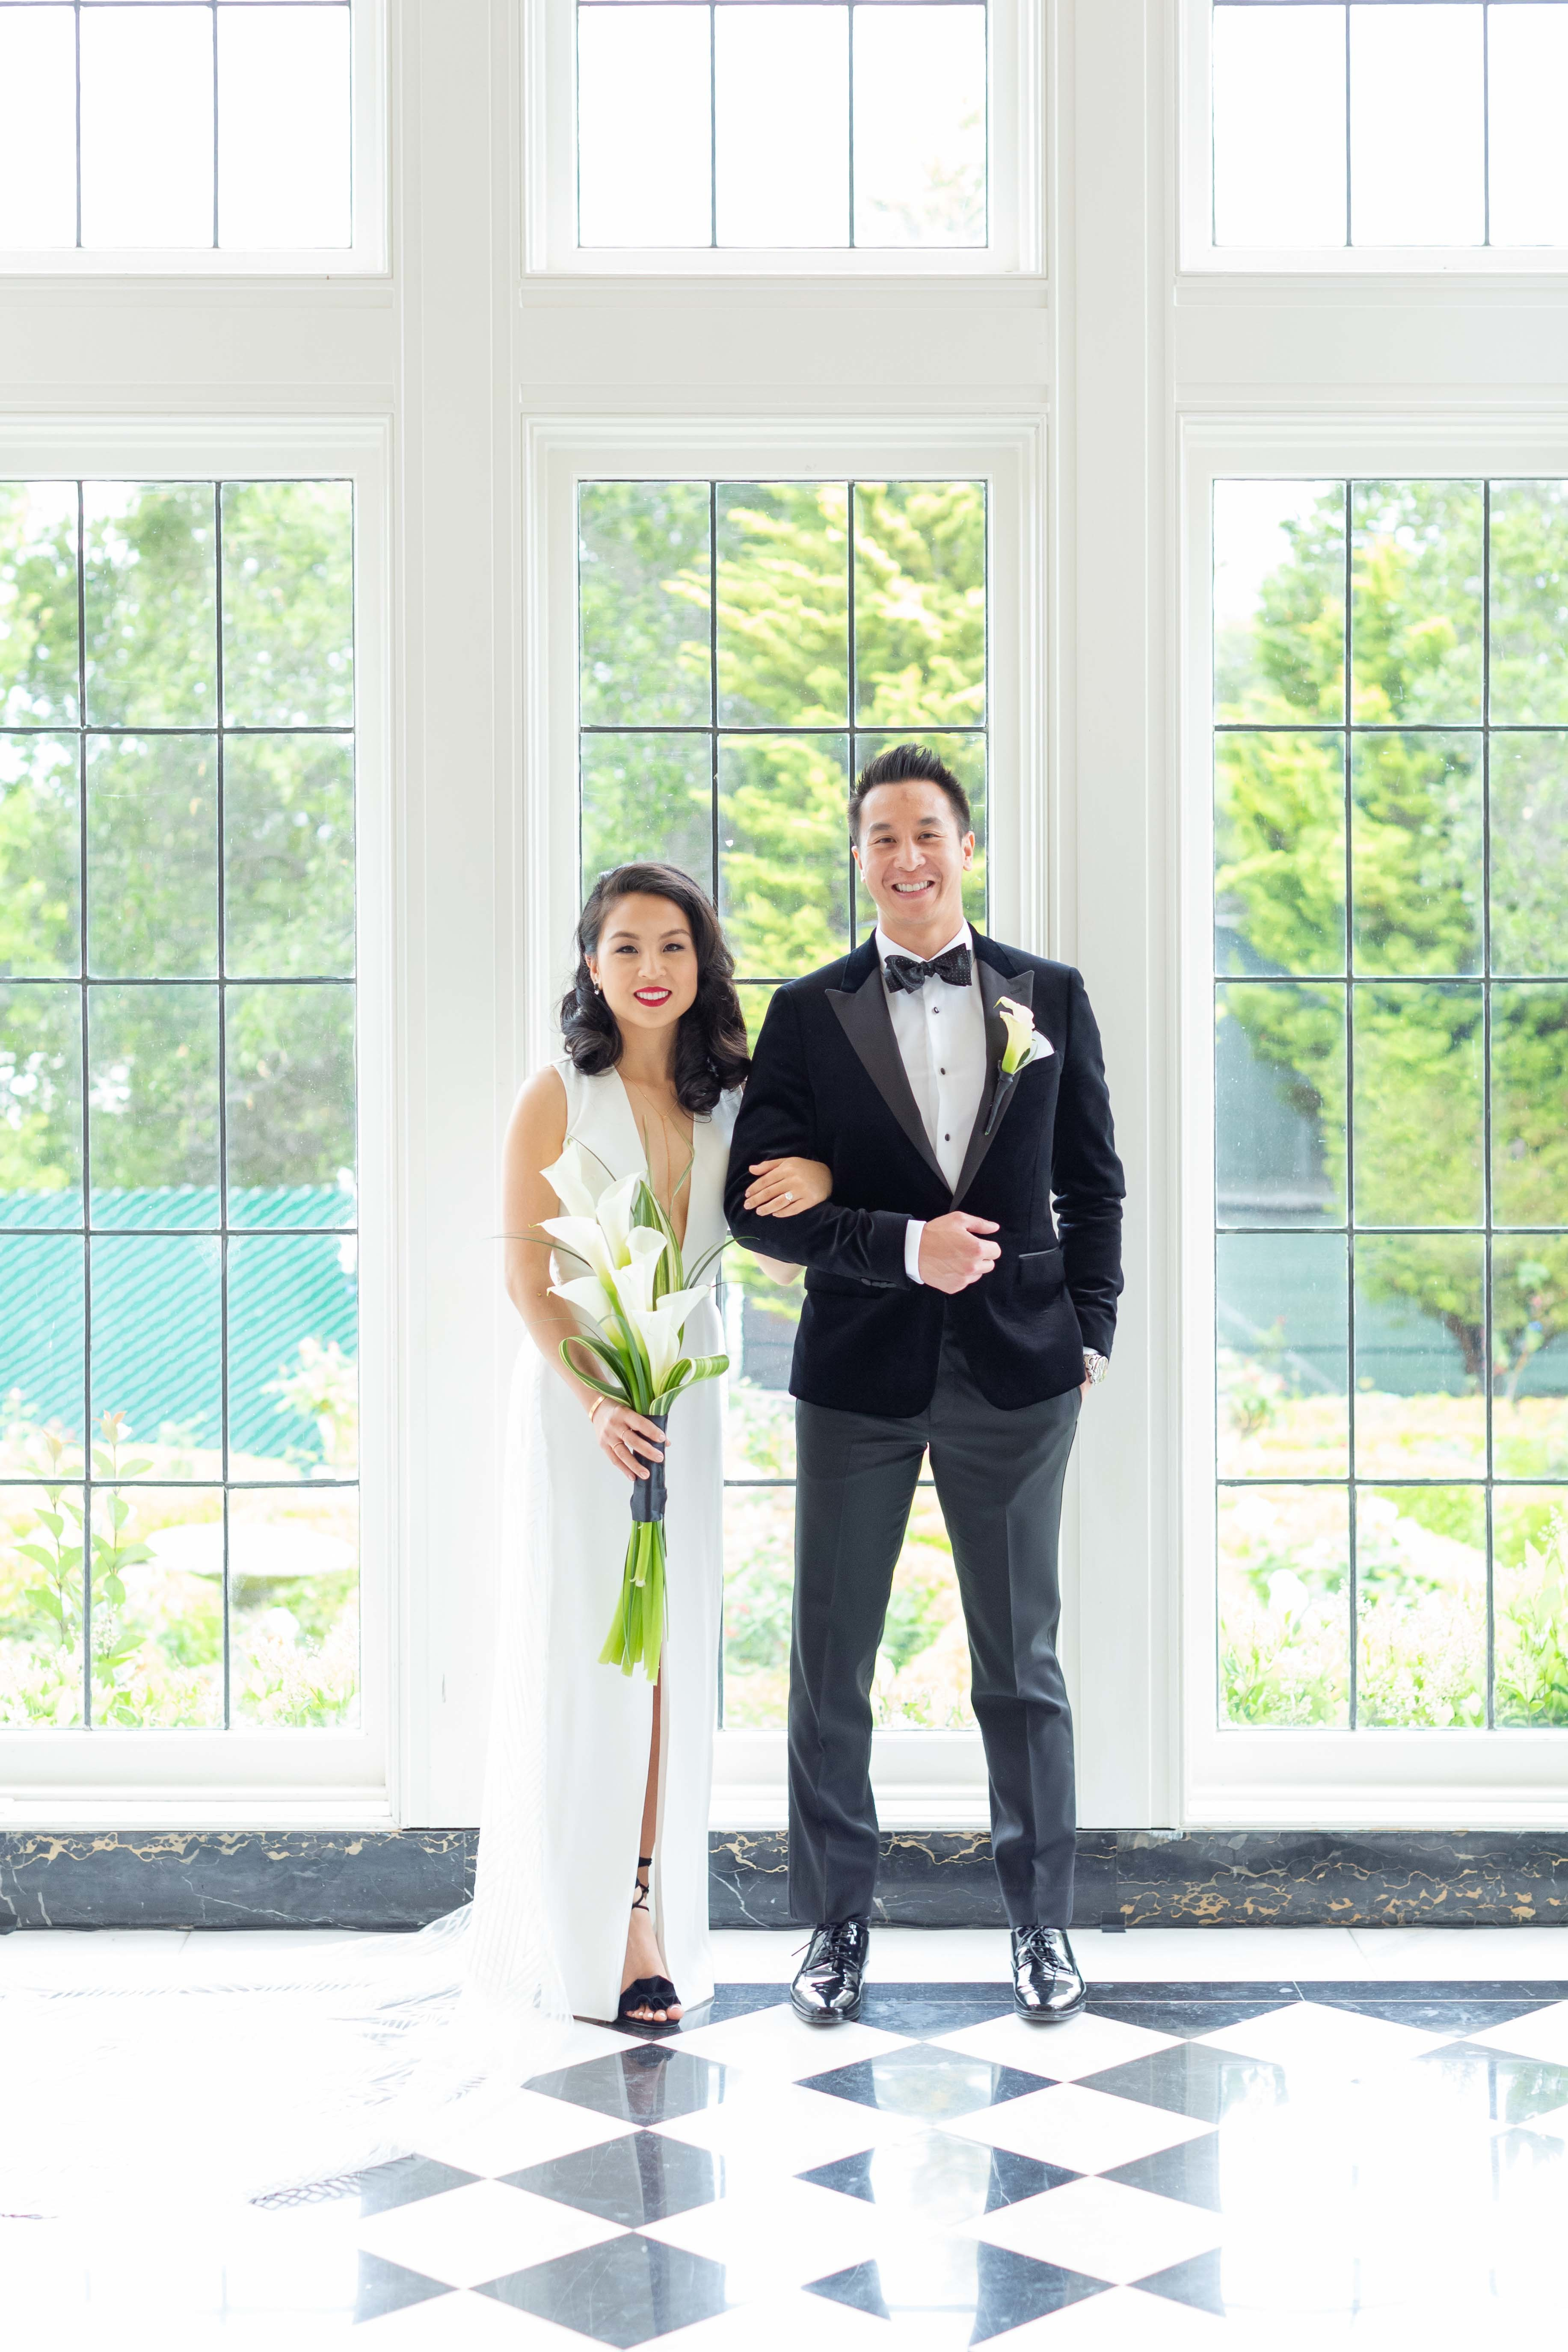 Bride and groom. Bride wears a sleek column dress with a plunging neckline.